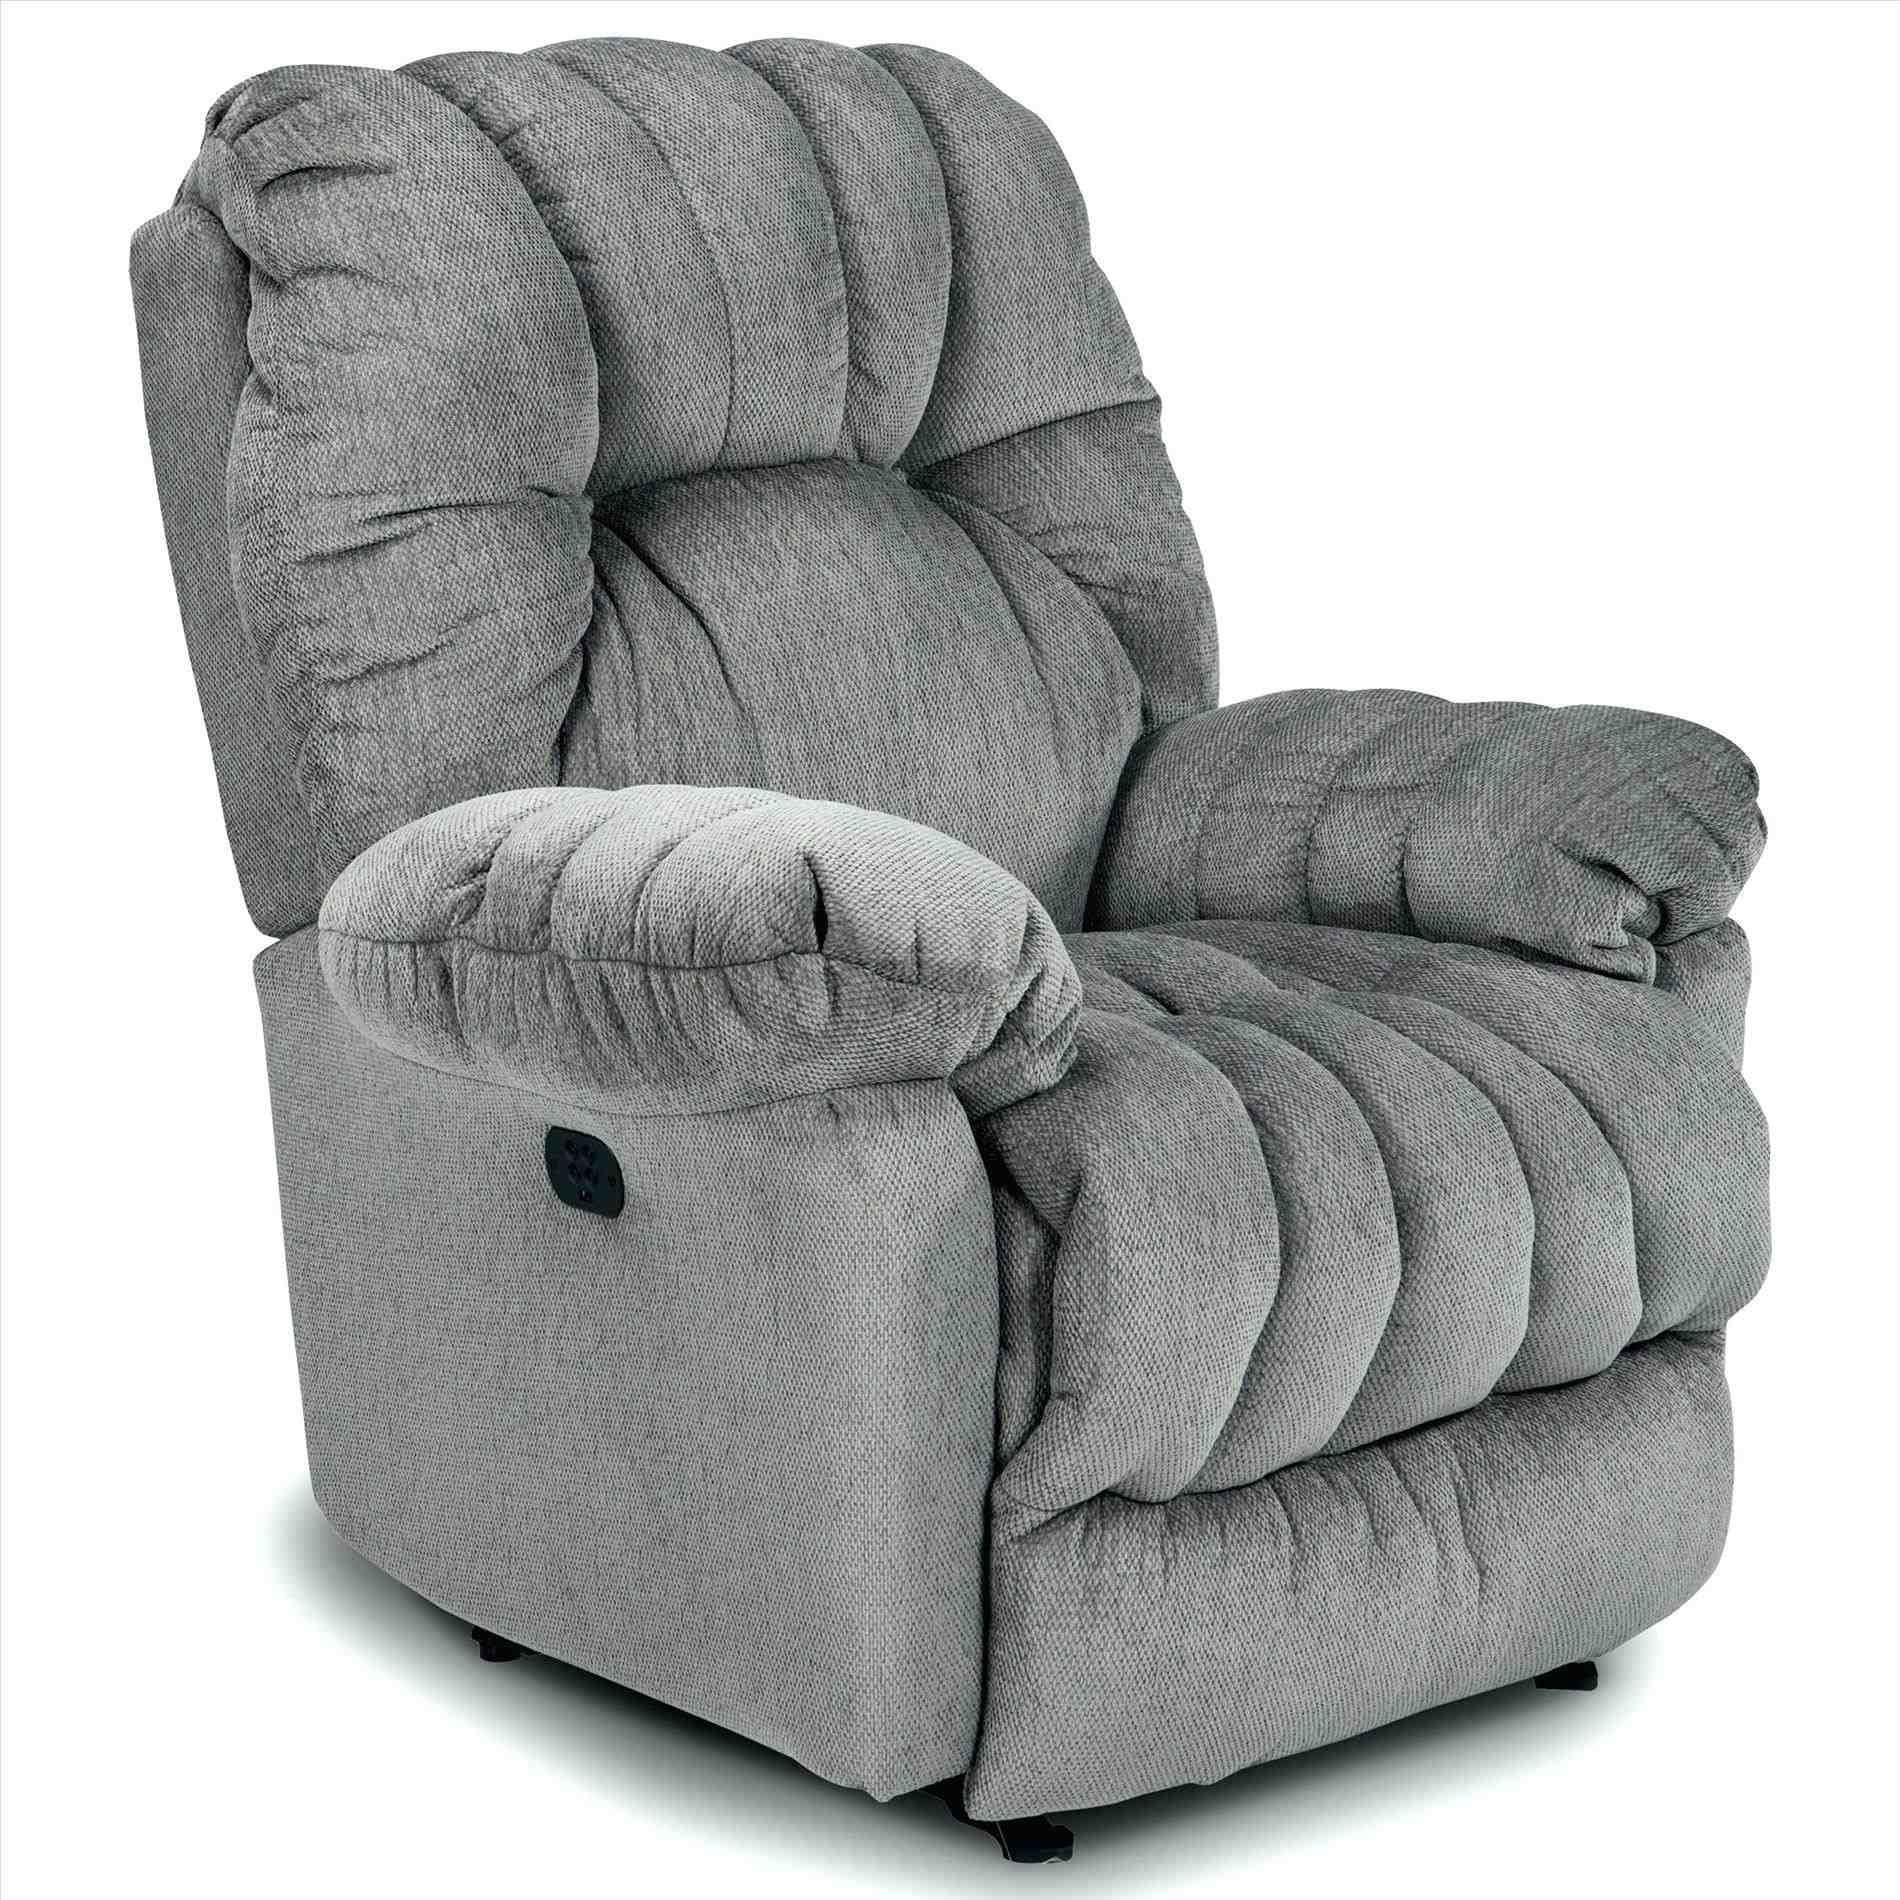 Sofa Bed Uk Under 100 Leather Sleeper Restoration Hardware Cheap Recliner Chairs Armchairs Sofas Ikea